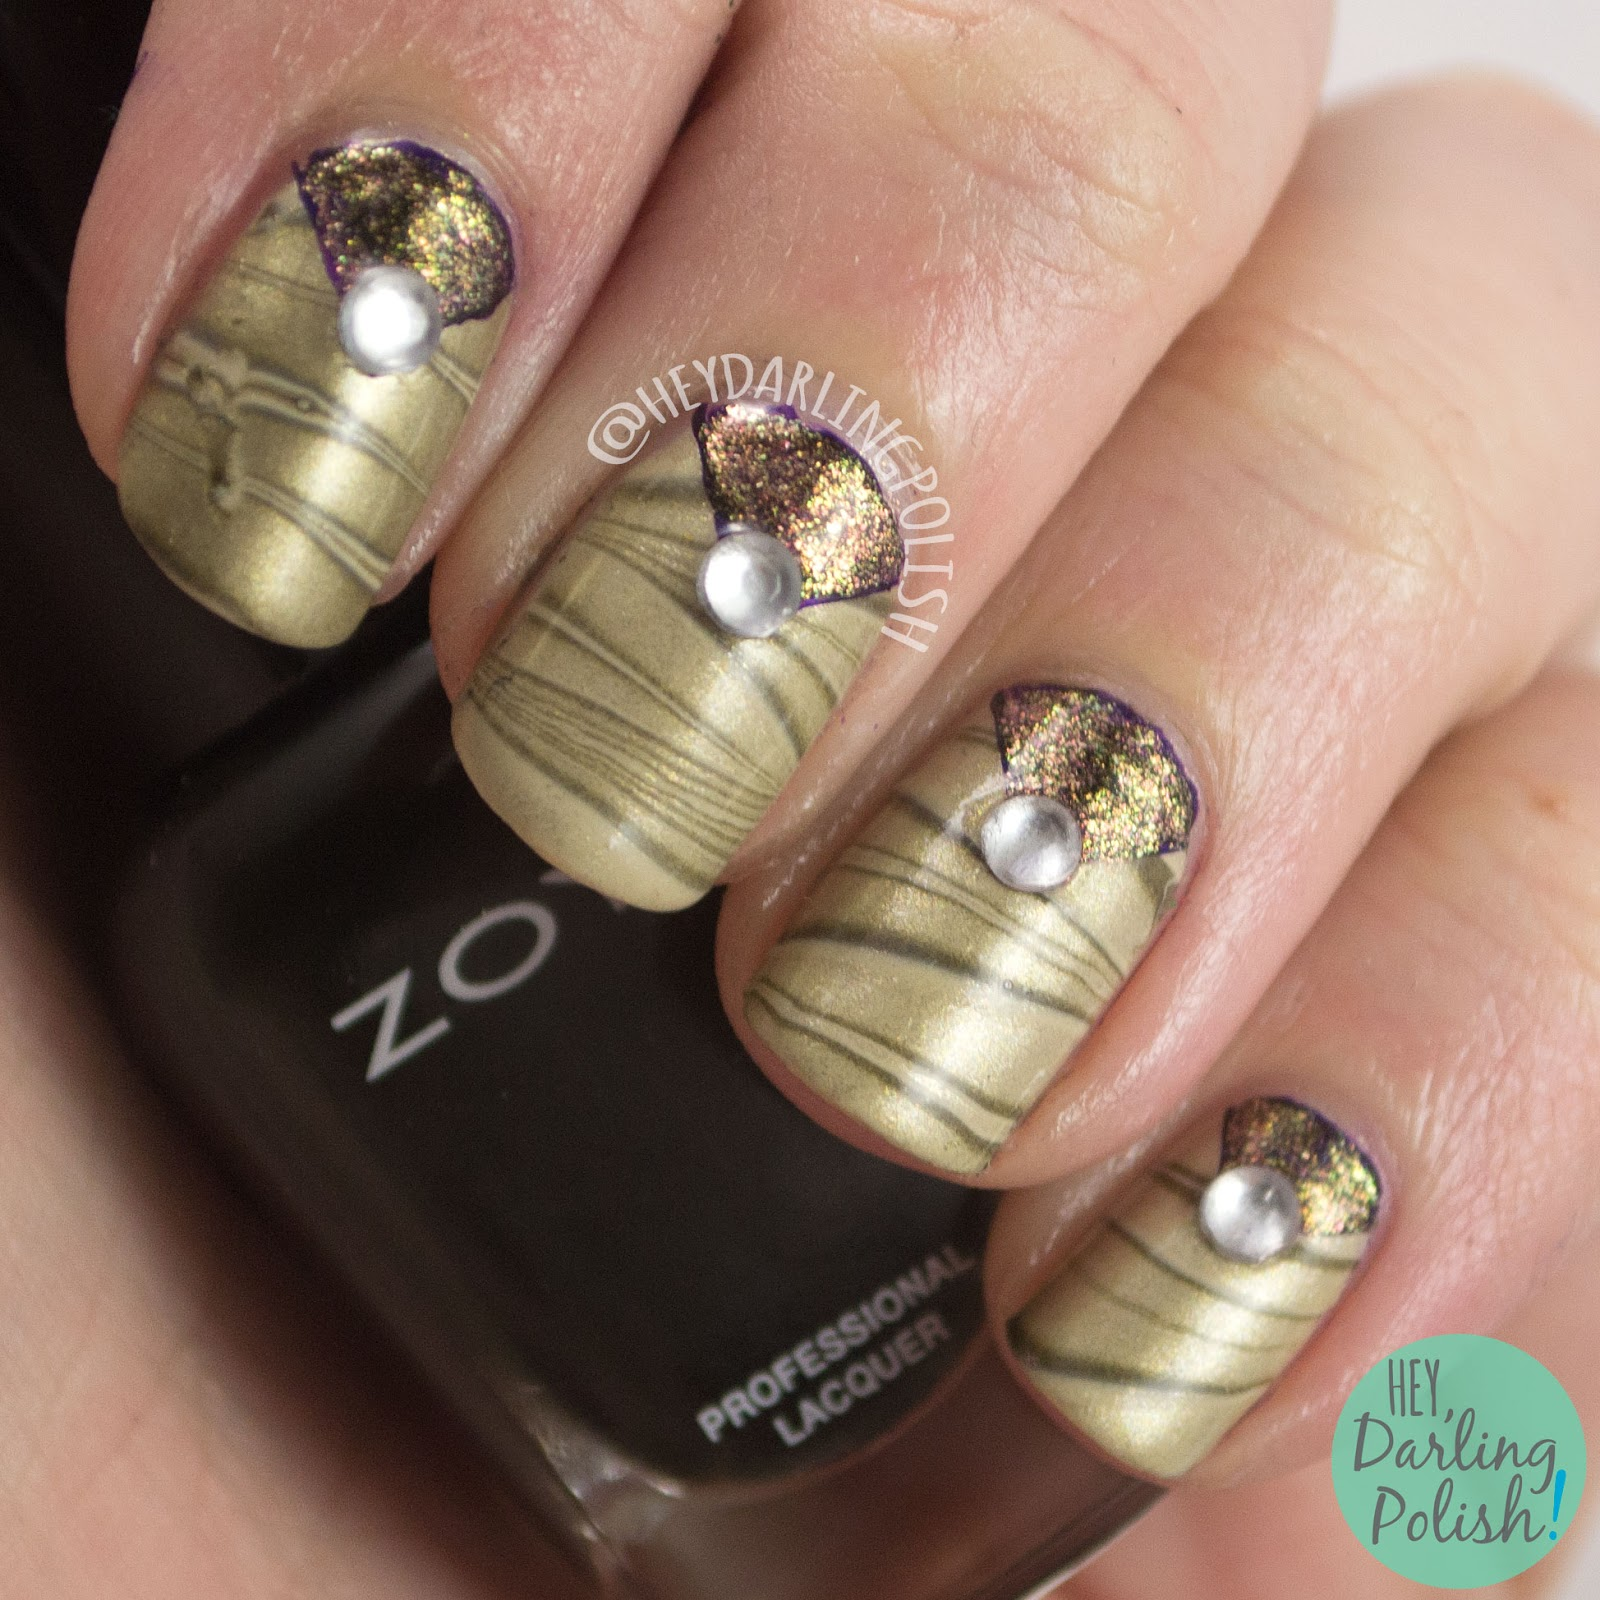 watermarble, nails, nail art, nail polish, zoya, triangles, rhinestones, hey darling polish